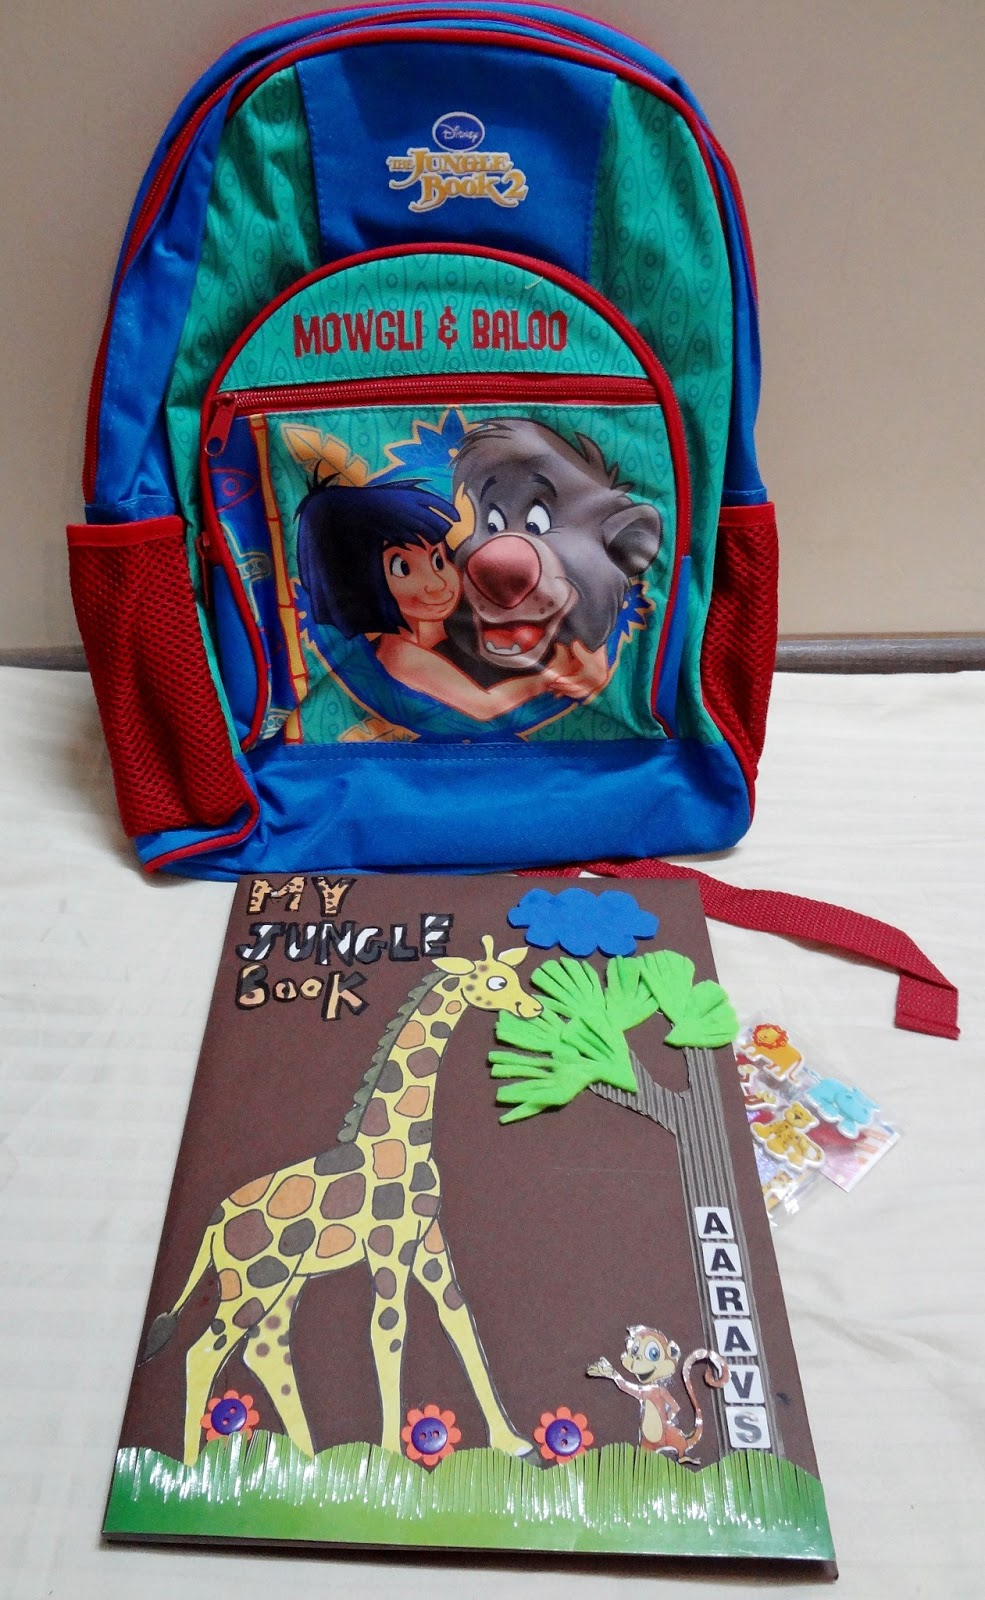 Jungle scrapbook ideas - This Idea Is Not Necessarily For The Cover Page Of Scrapbooks You Can Use It In Greeting Cards Or To Cover A Box Or An Envelope We All Love Ideas So